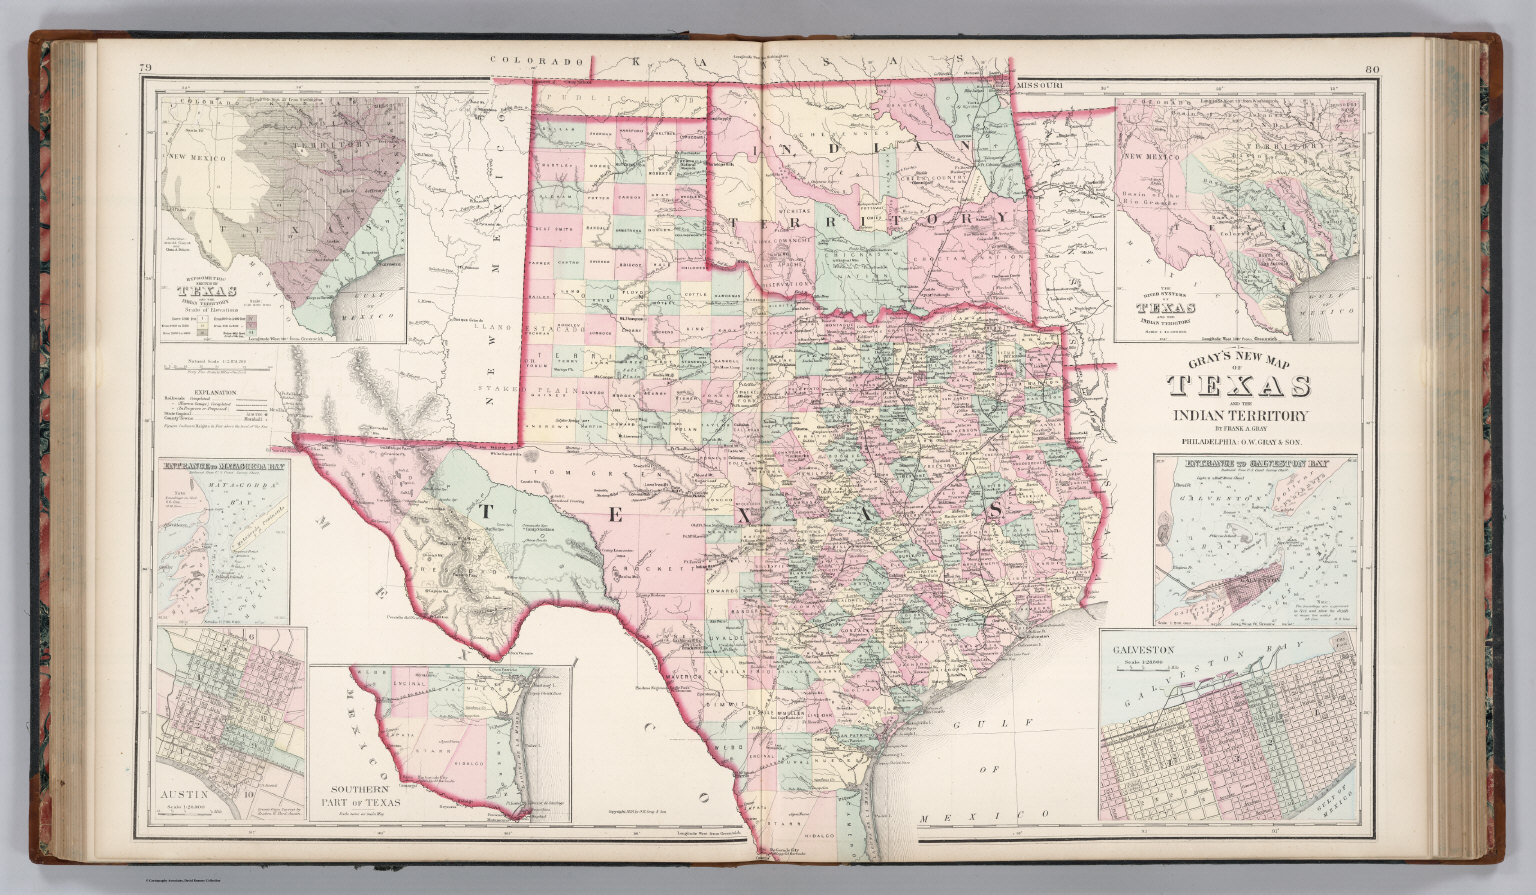 Texas Indian Territory Map